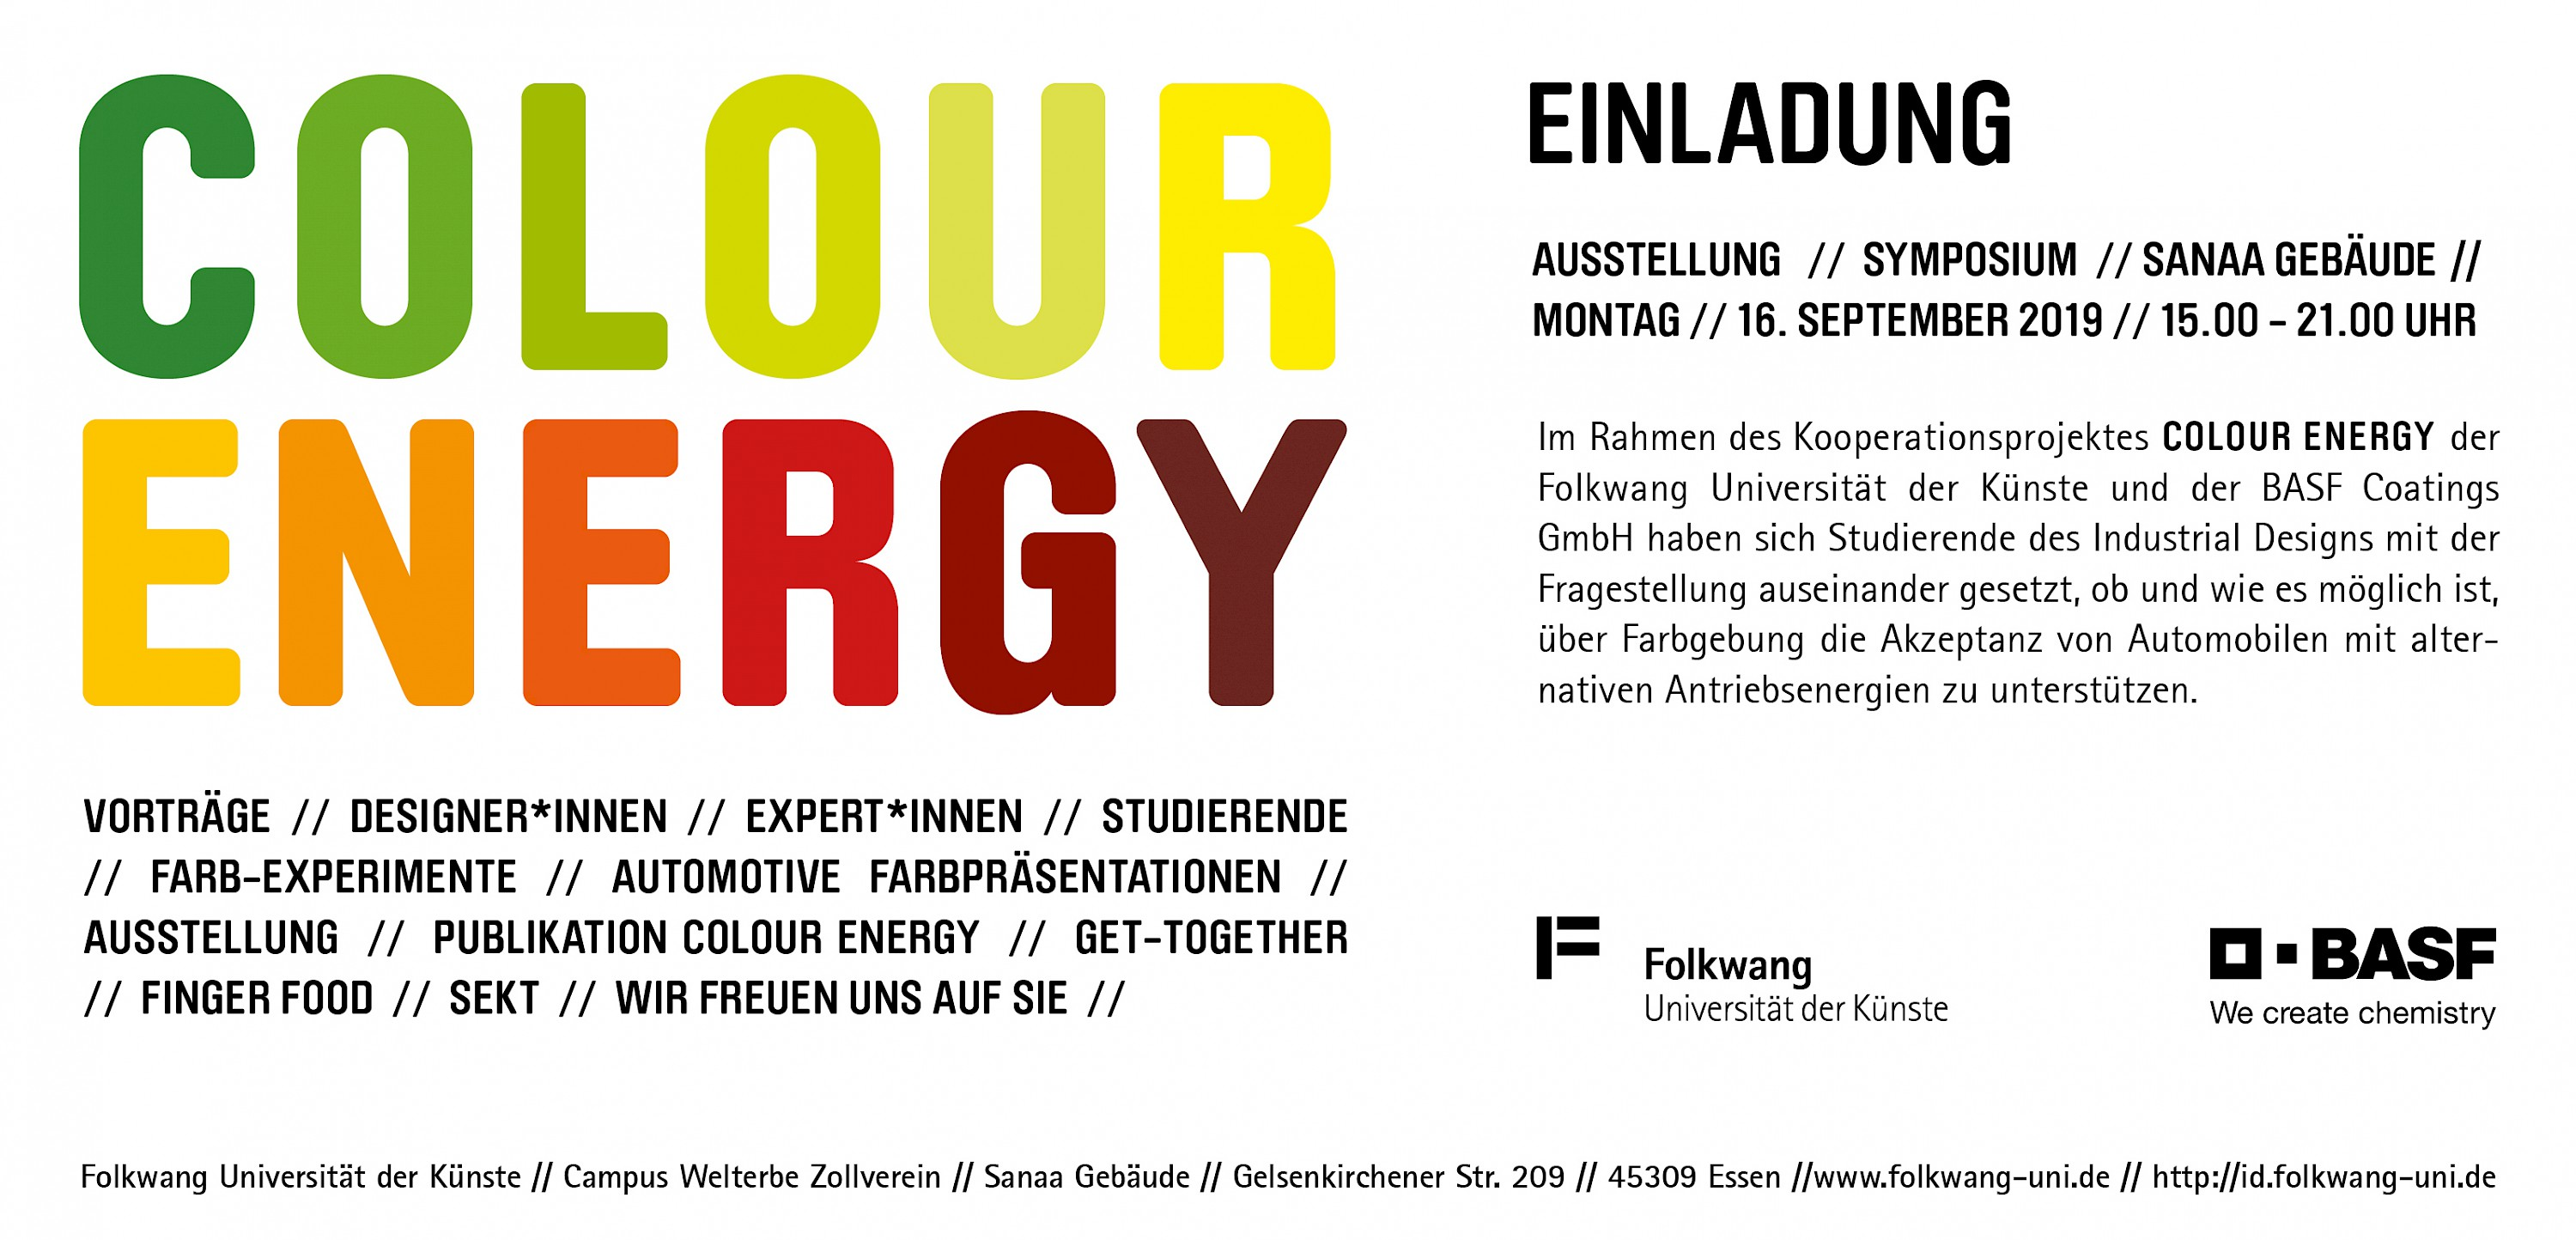 Bildname: folkwang-industrial-design-color_energy_ausstellung_symposium-ddpy7a